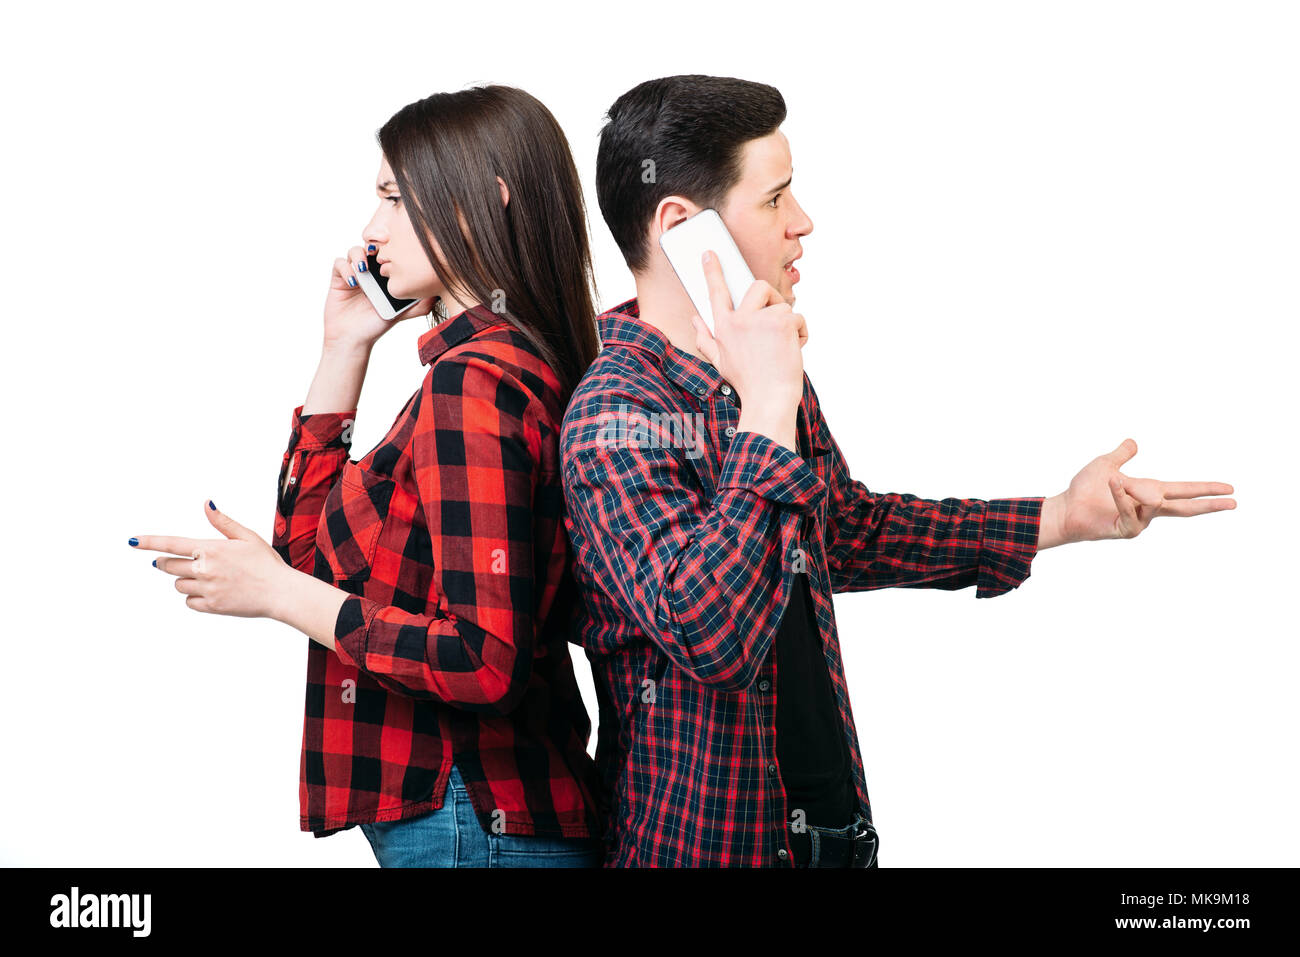 Smartphone addicted people. Couple standing back to back, talking by mobile phones, white background. Manipulation of consciousness concept - Stock Image